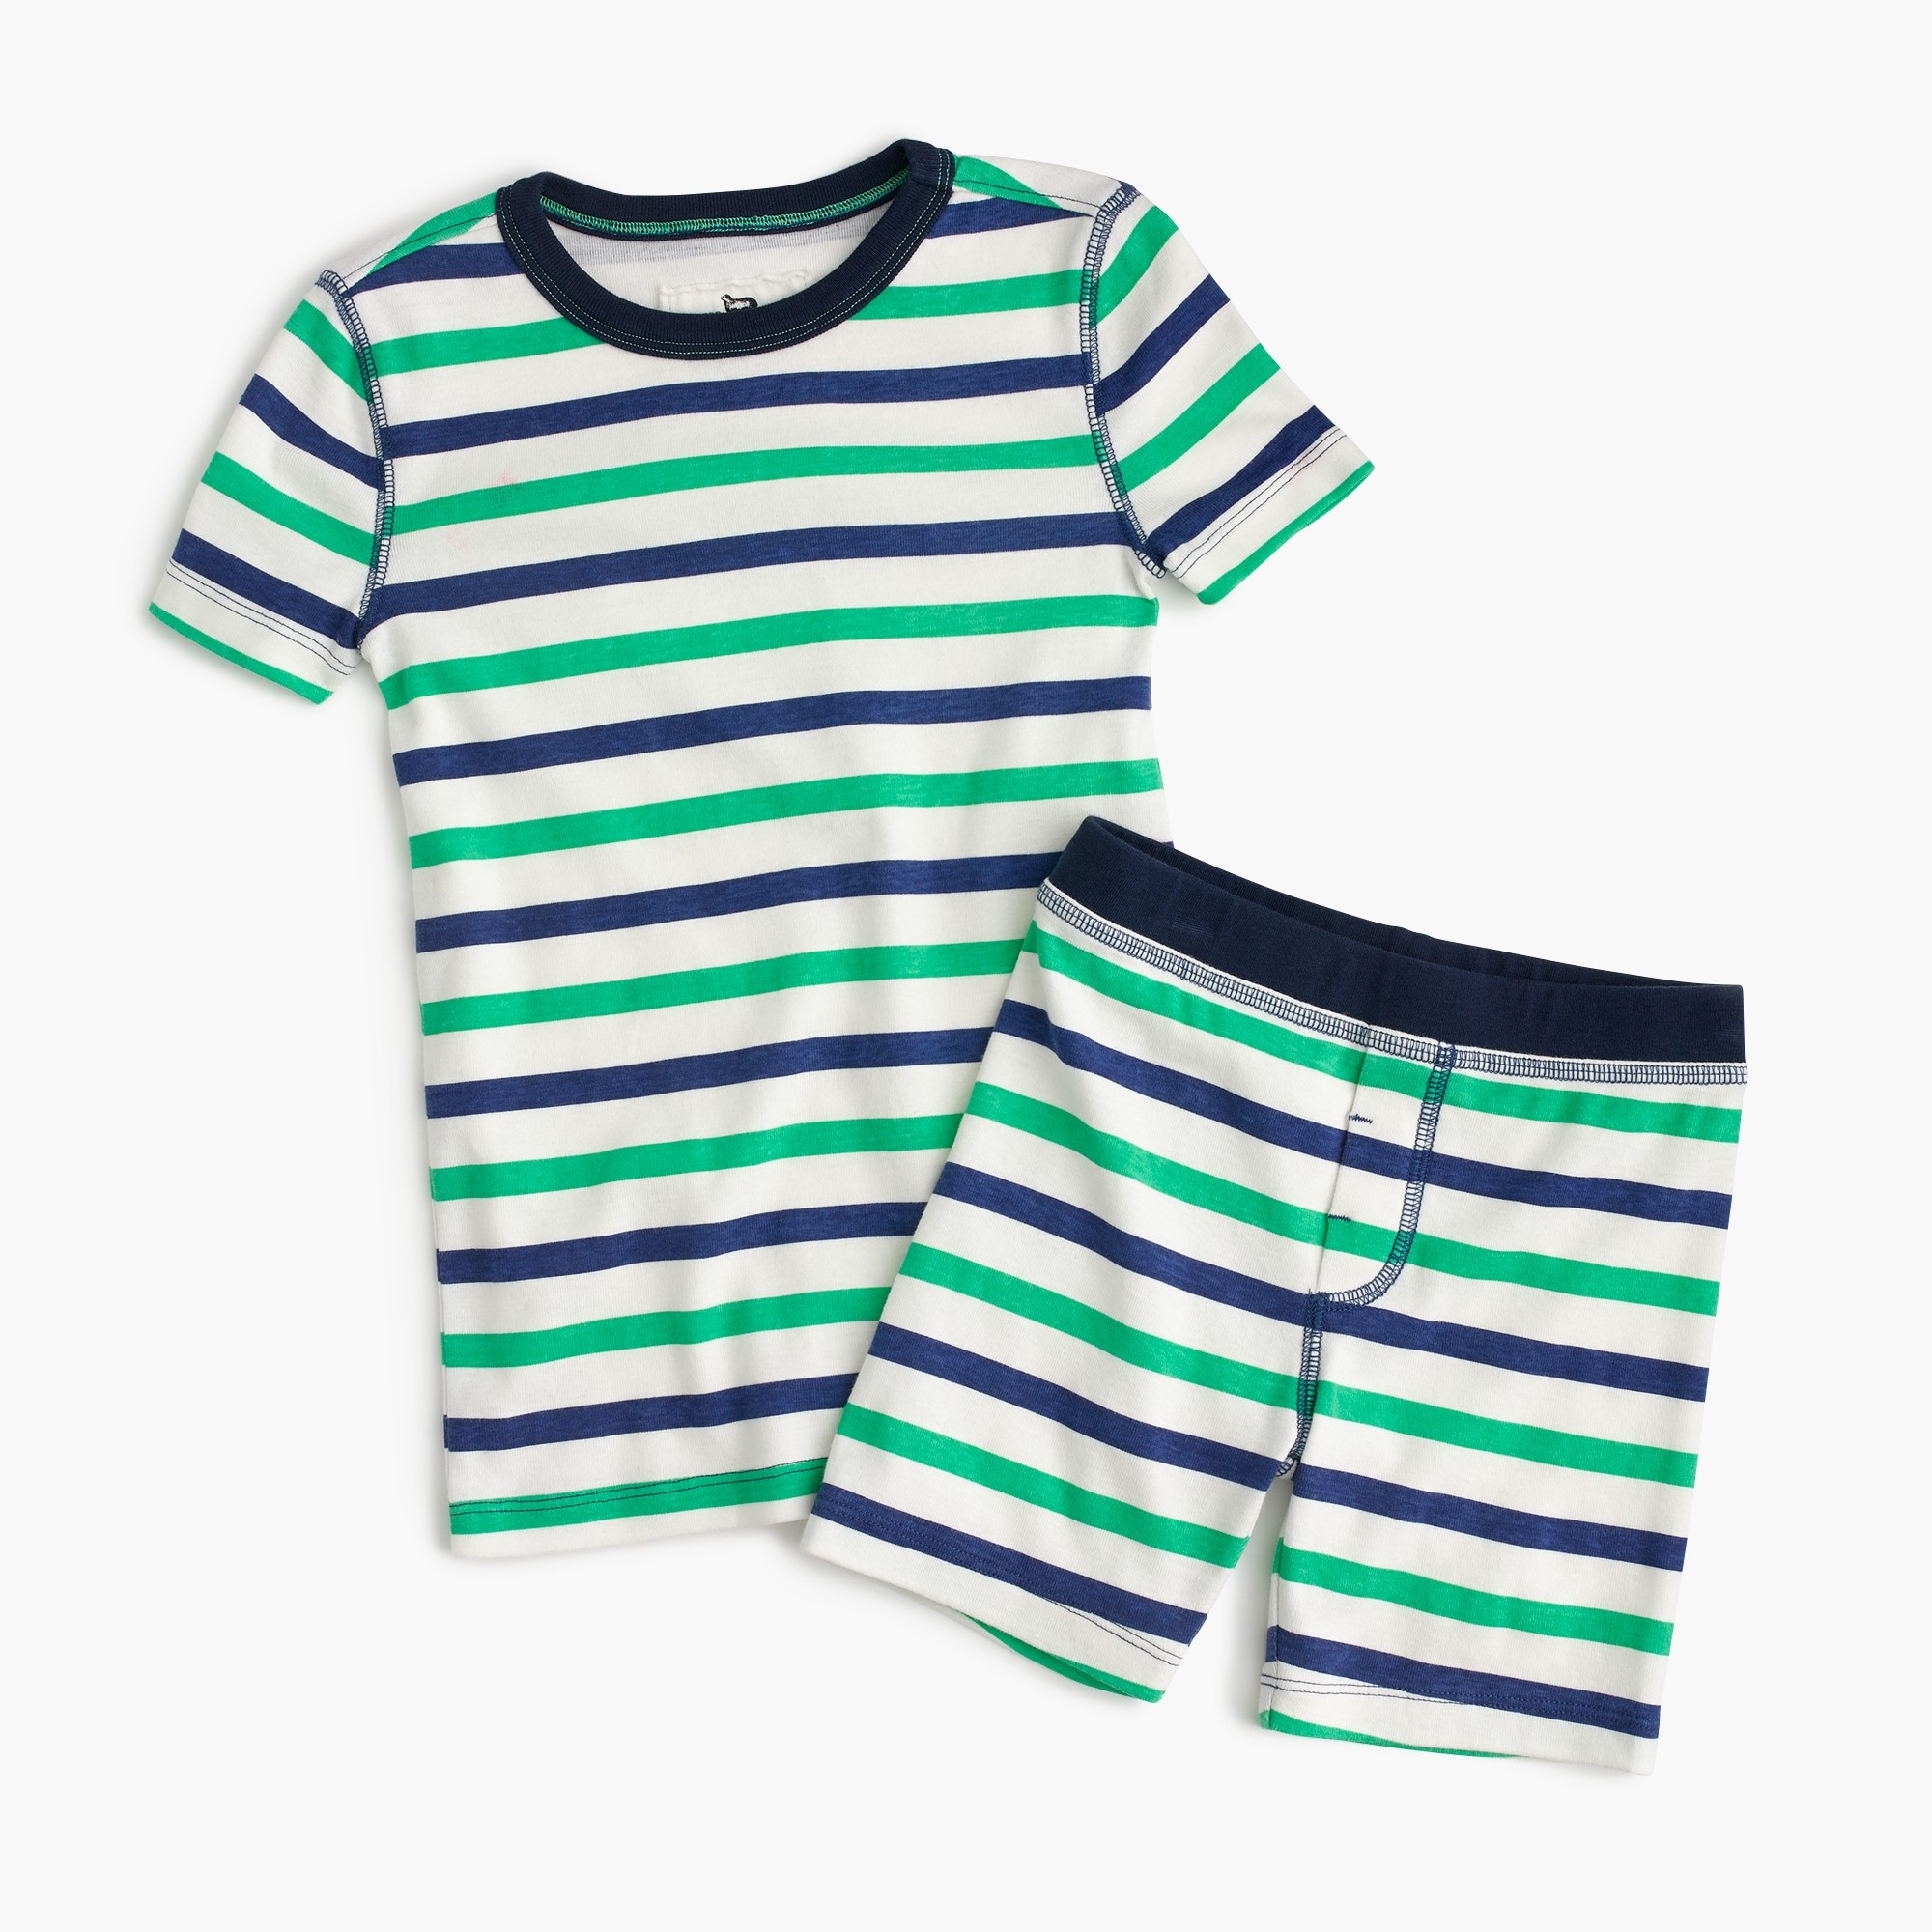 Image 1 for Kids' short pajama set in cabana stripes